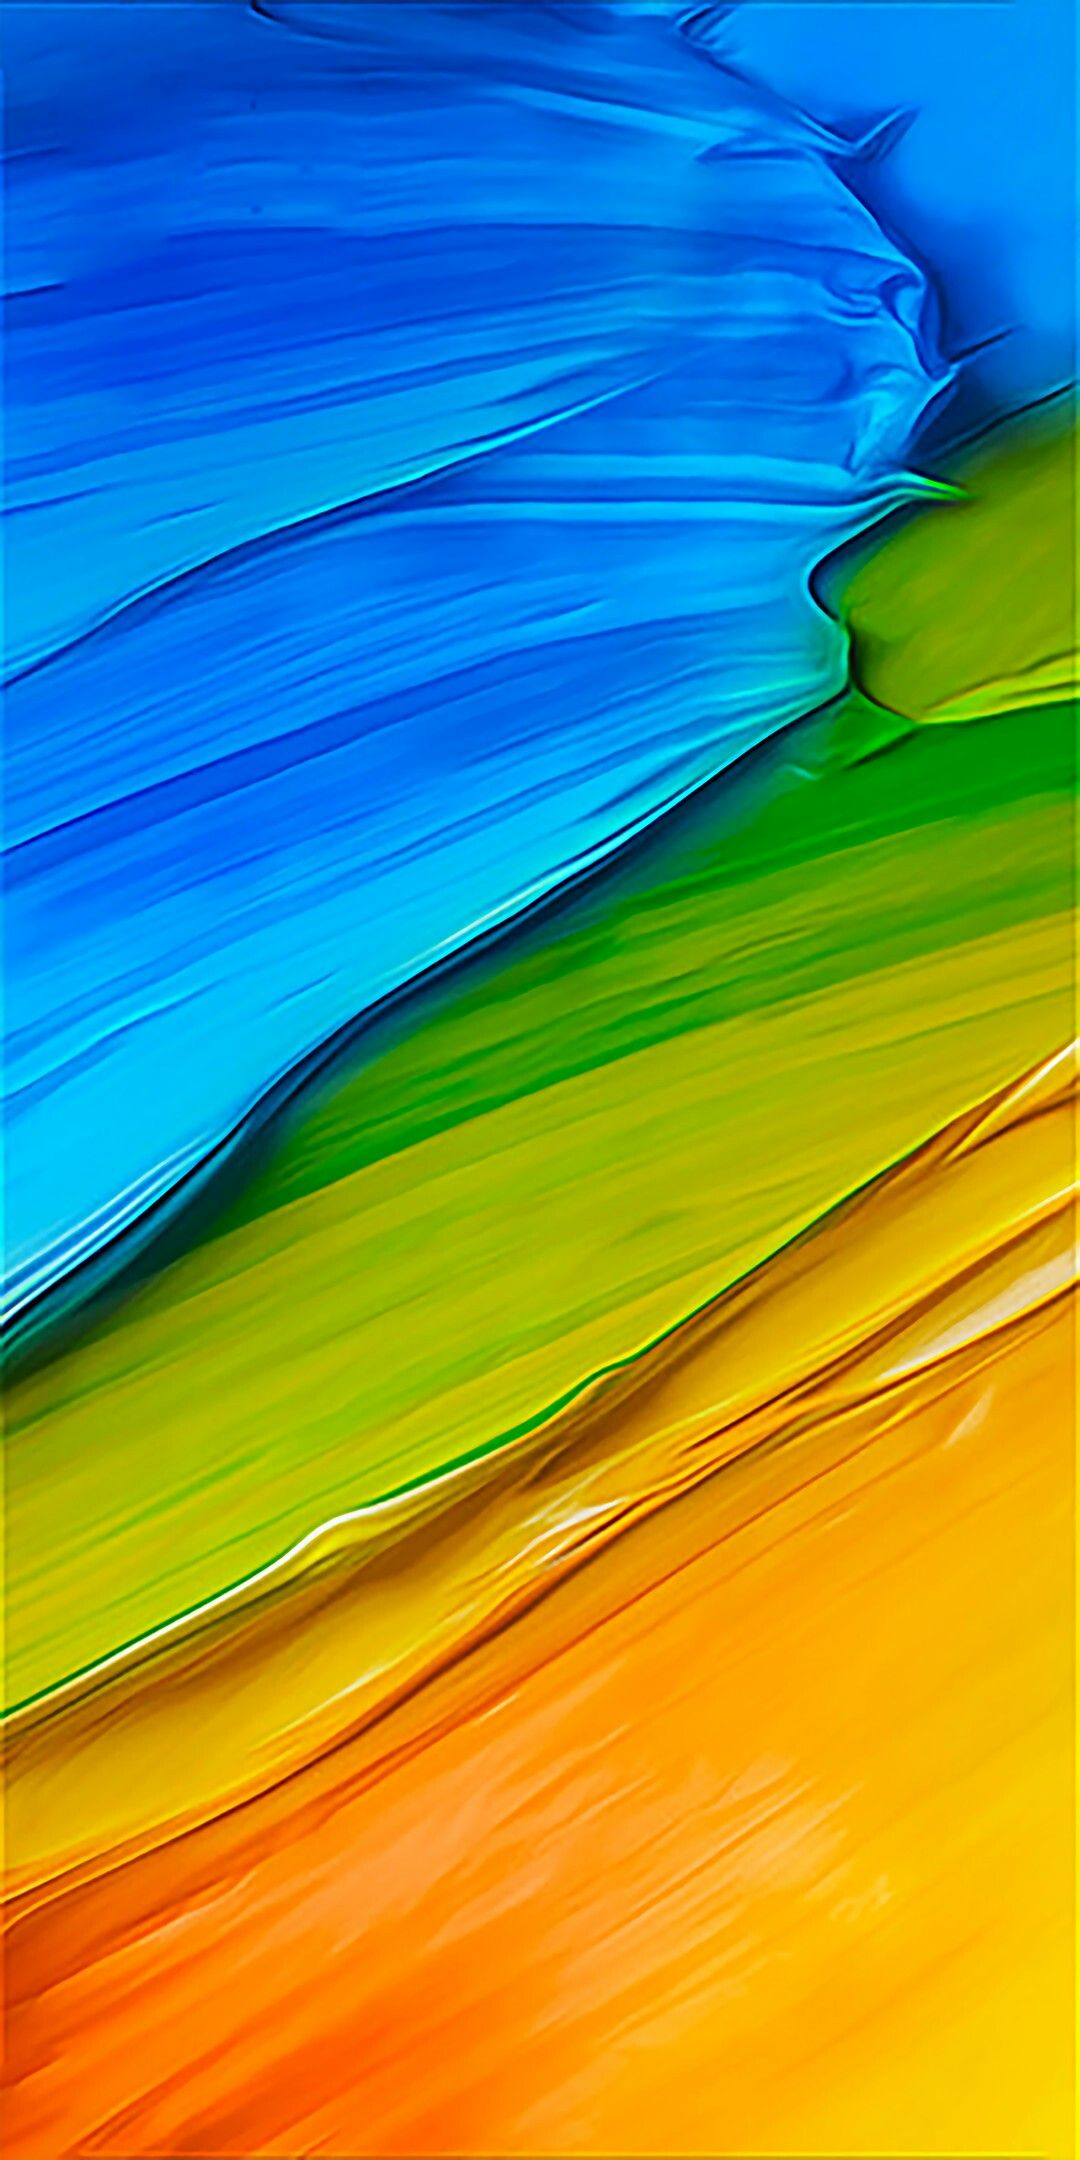 21 Redmi 5 Wallpapers On Wallpapersafari